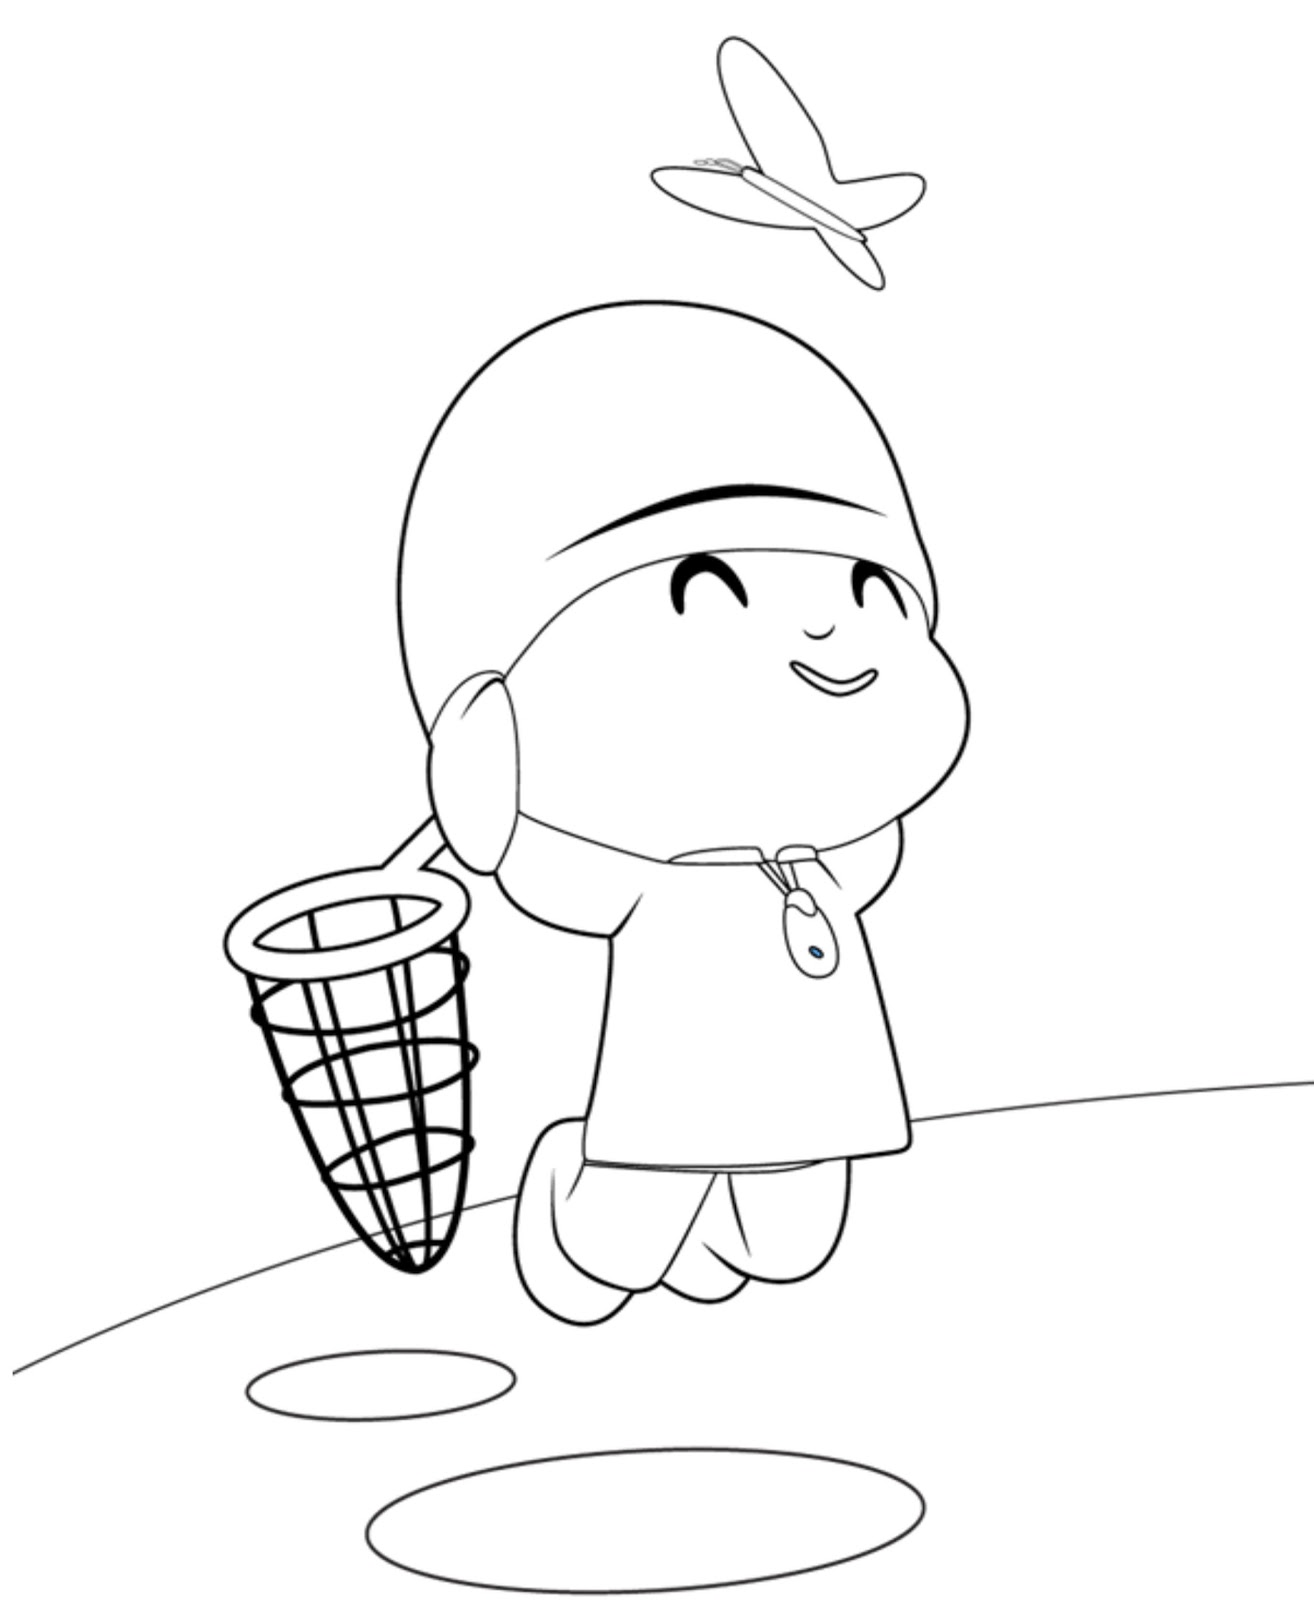 coolest coloring pages ever | Pocoyo Coloring Pages ~ Free Printable Coloring Pages ...